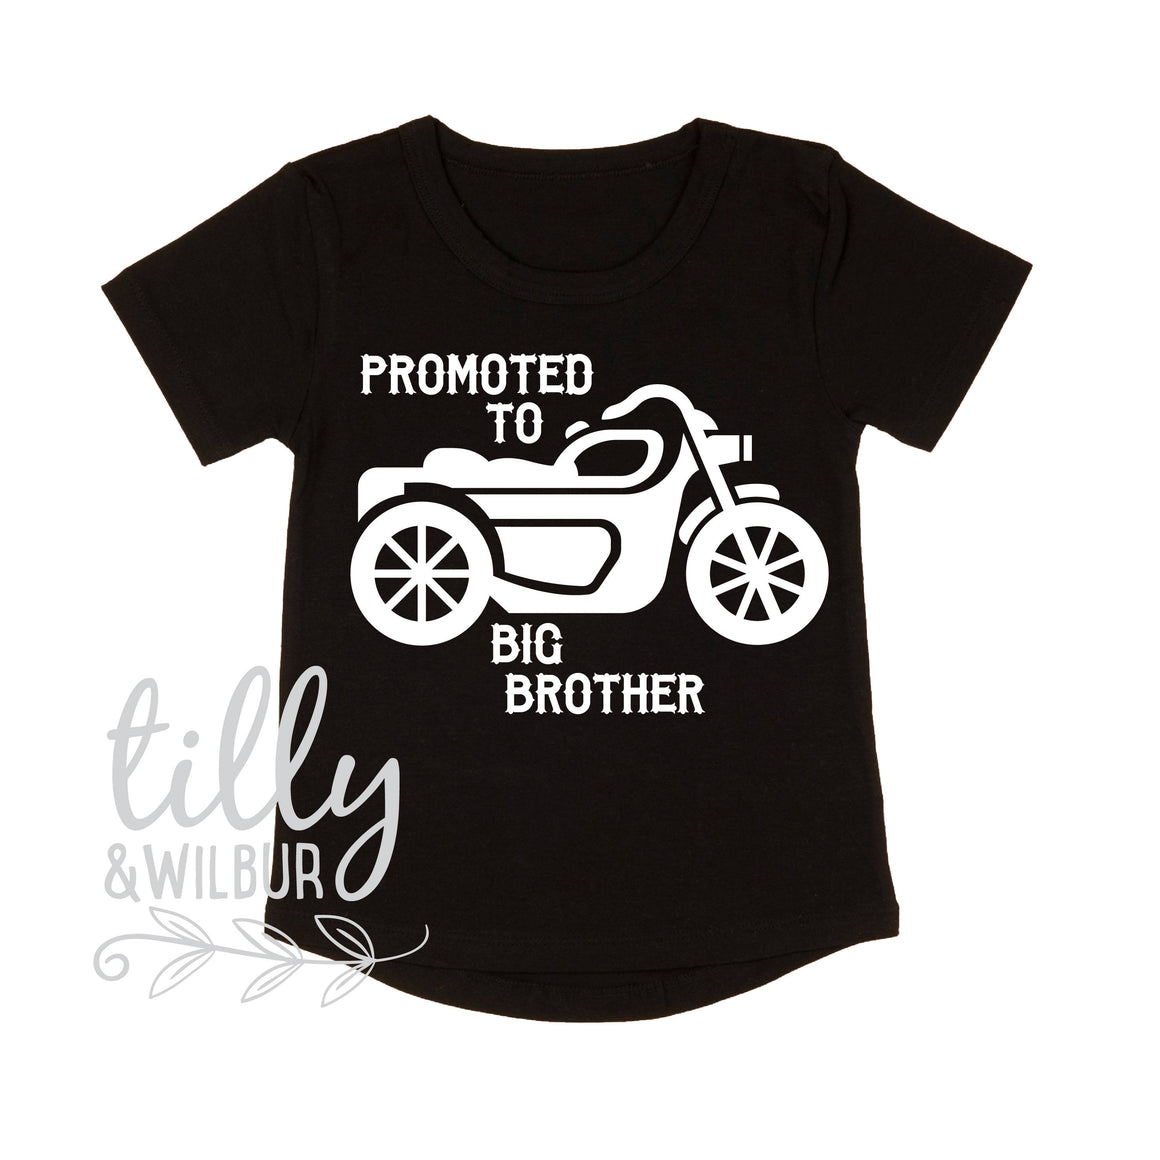 Promoted To Big Brother Motorbike T-Shirt For Boys, Big Brother Shirt, I'm Going To Be A Big Brother, Pregnancy Announcement, Boys Clothing